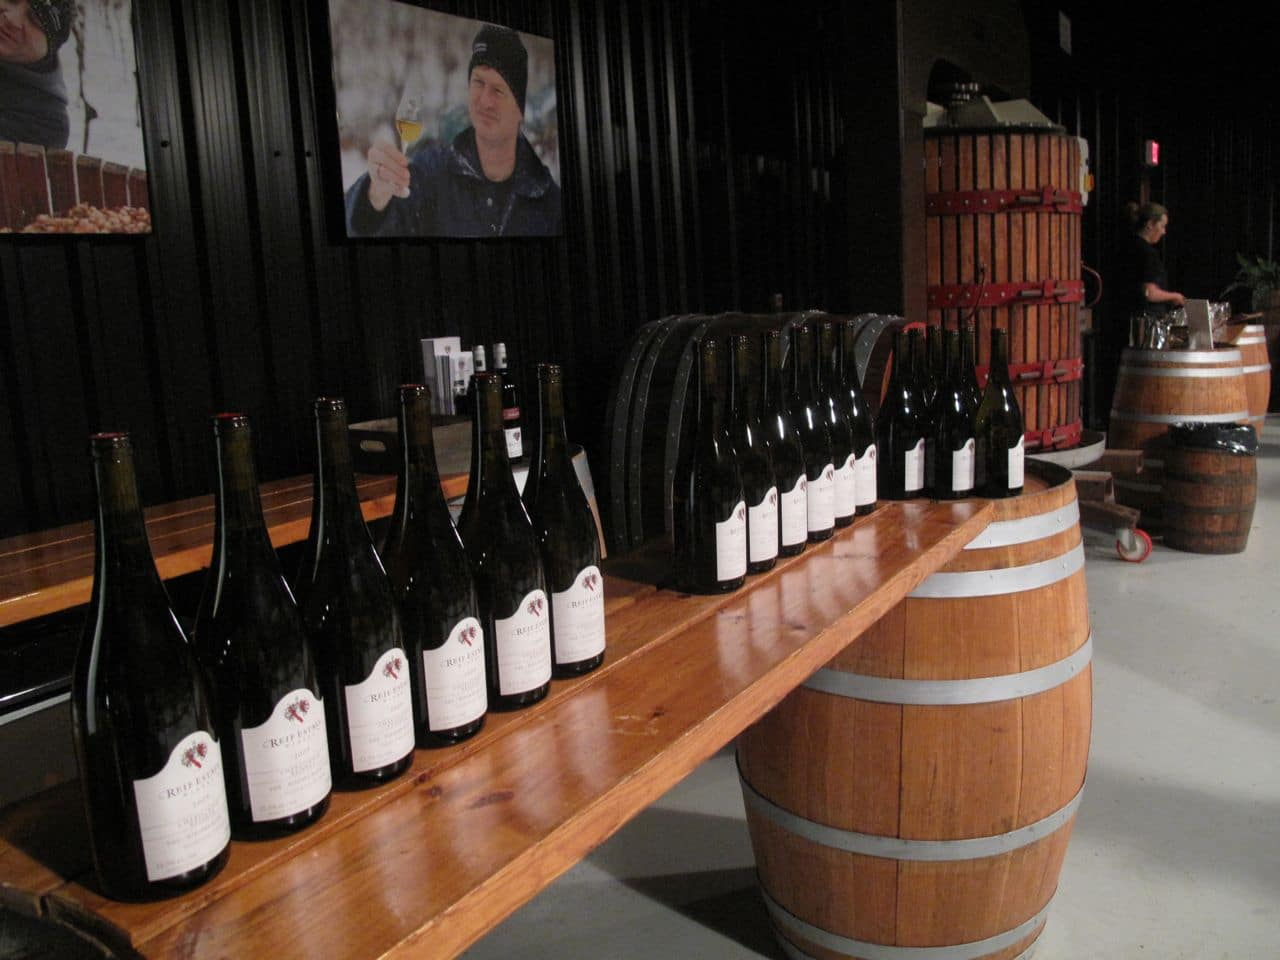 Reif Estate Winery pours award-winning German-inspired wines.